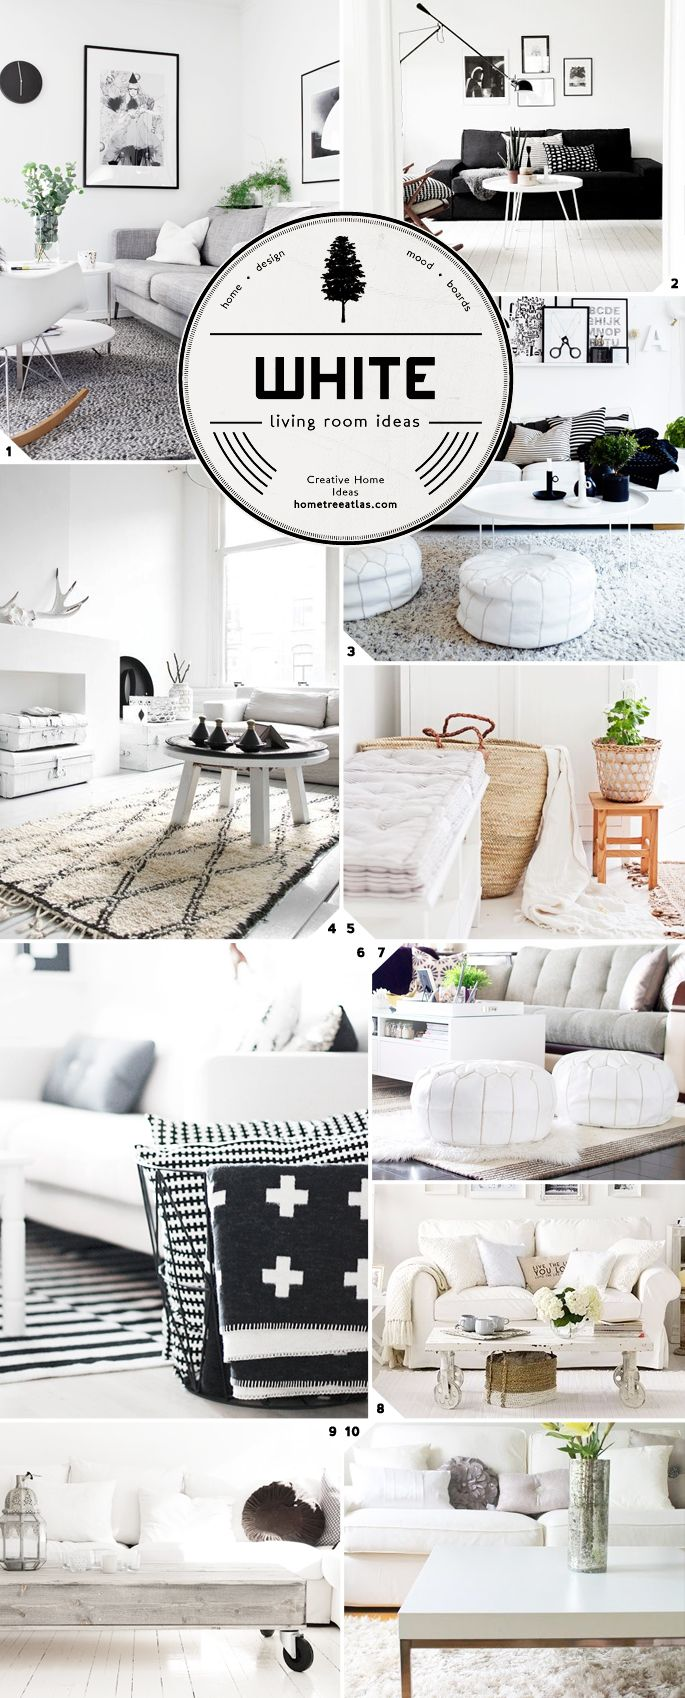 White living room design ideas..